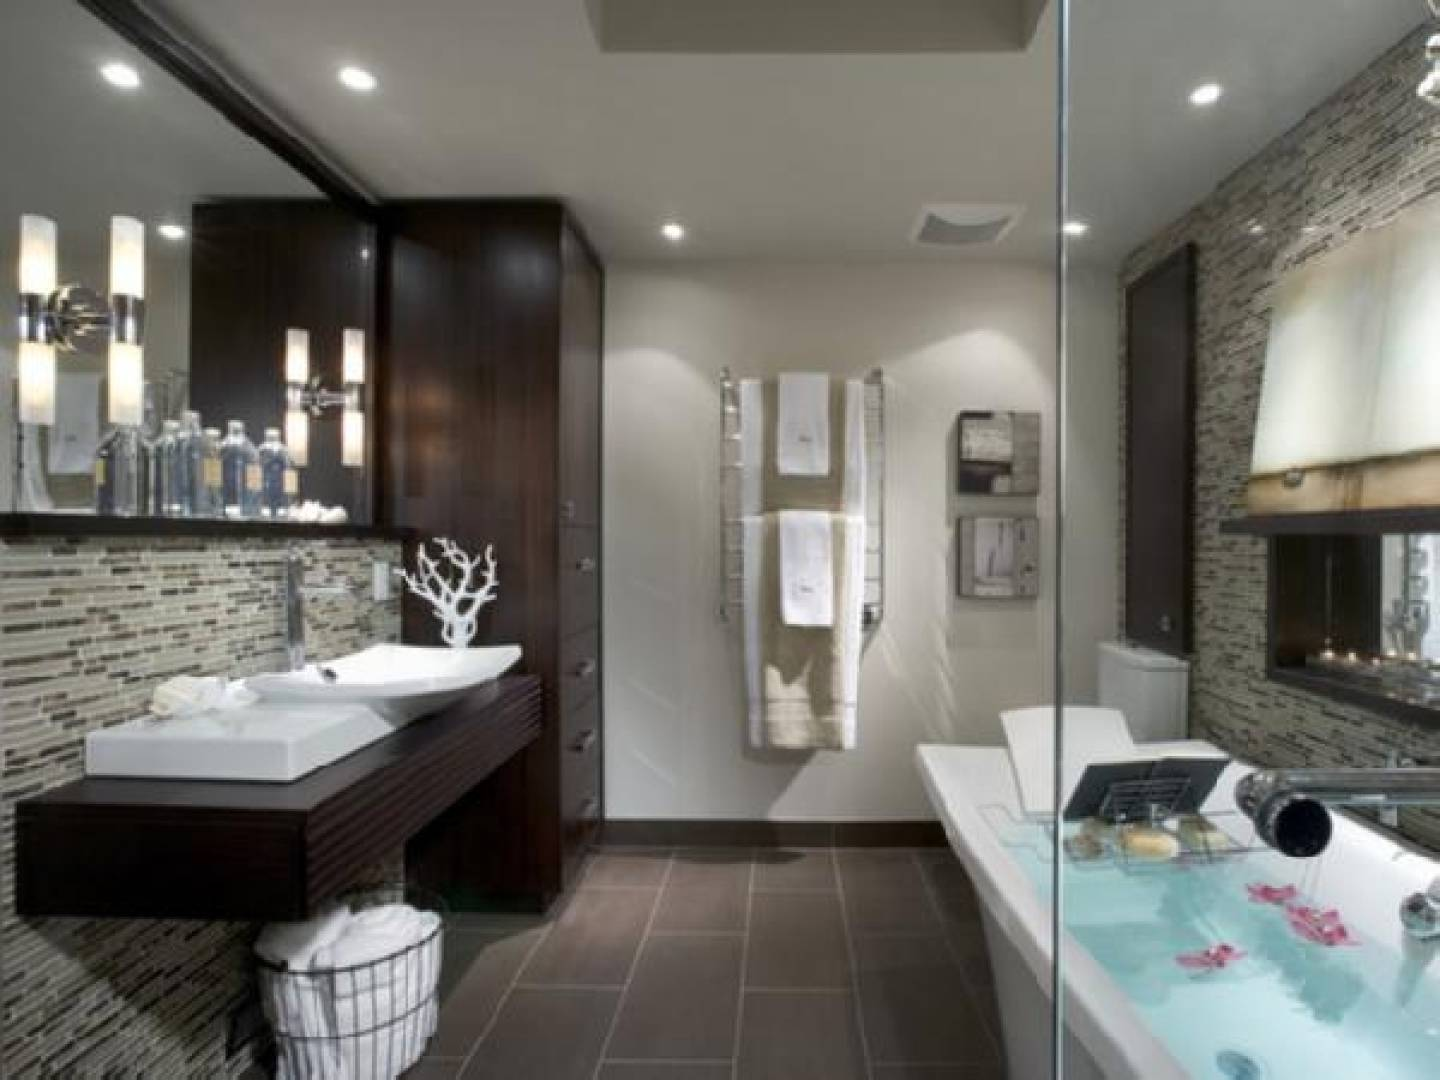 Large Subway Tile Bathroom Joy Studio Design Best